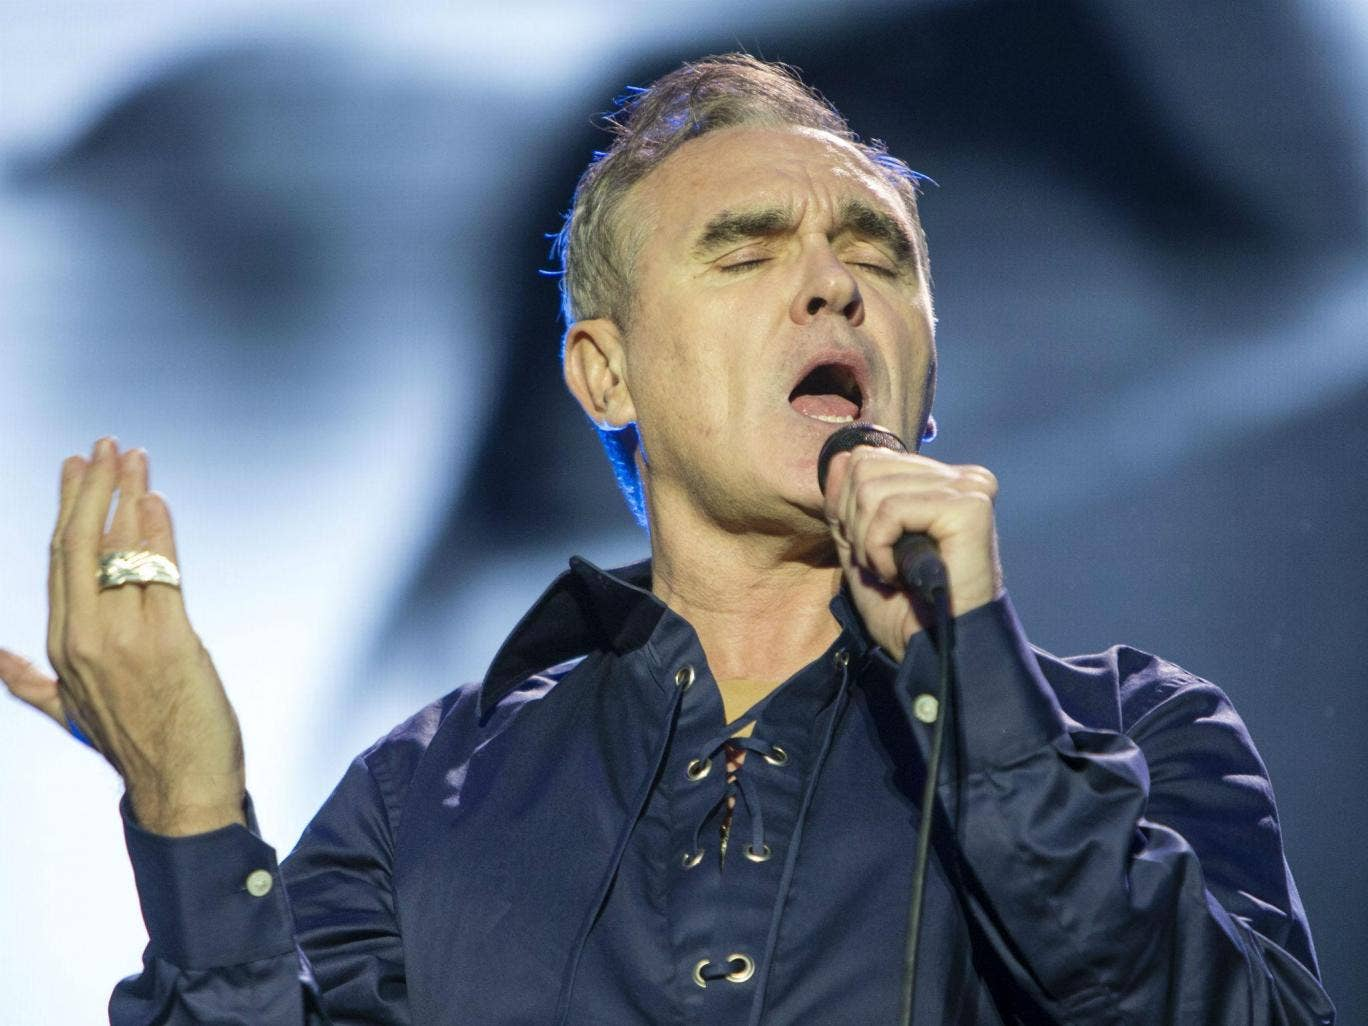 Morrissey lever pa gamla hits